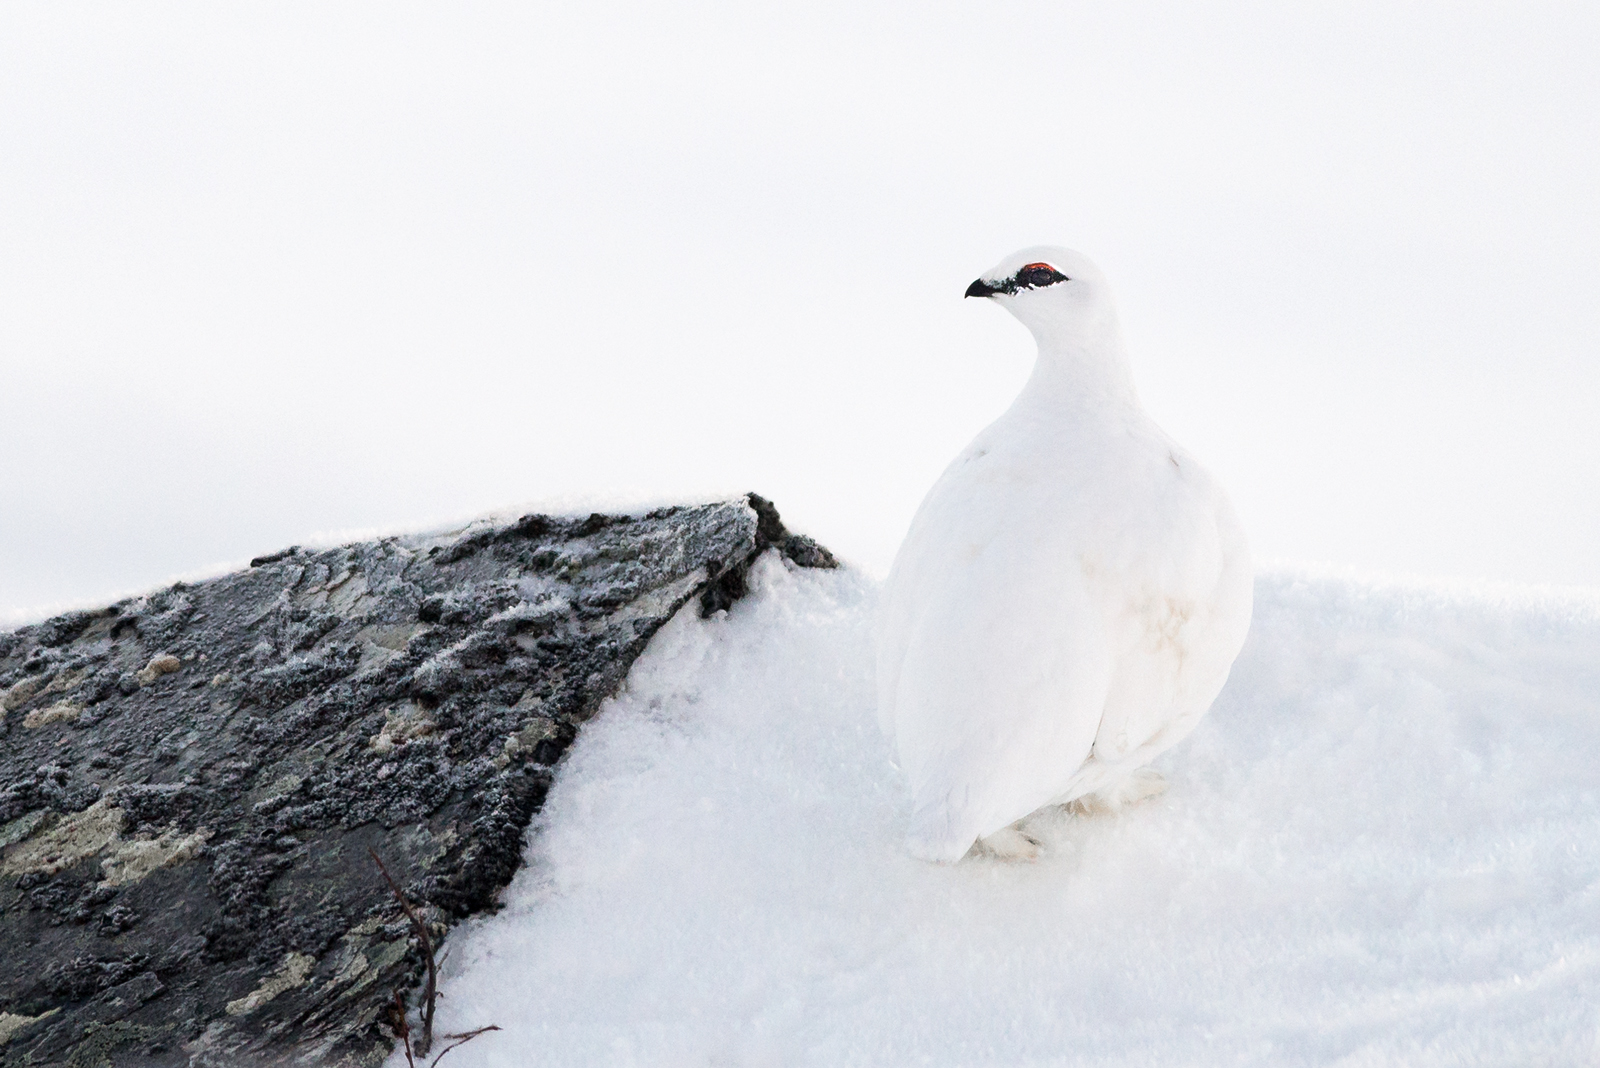 Perfectly camouflaged Rock Ptarmigan.